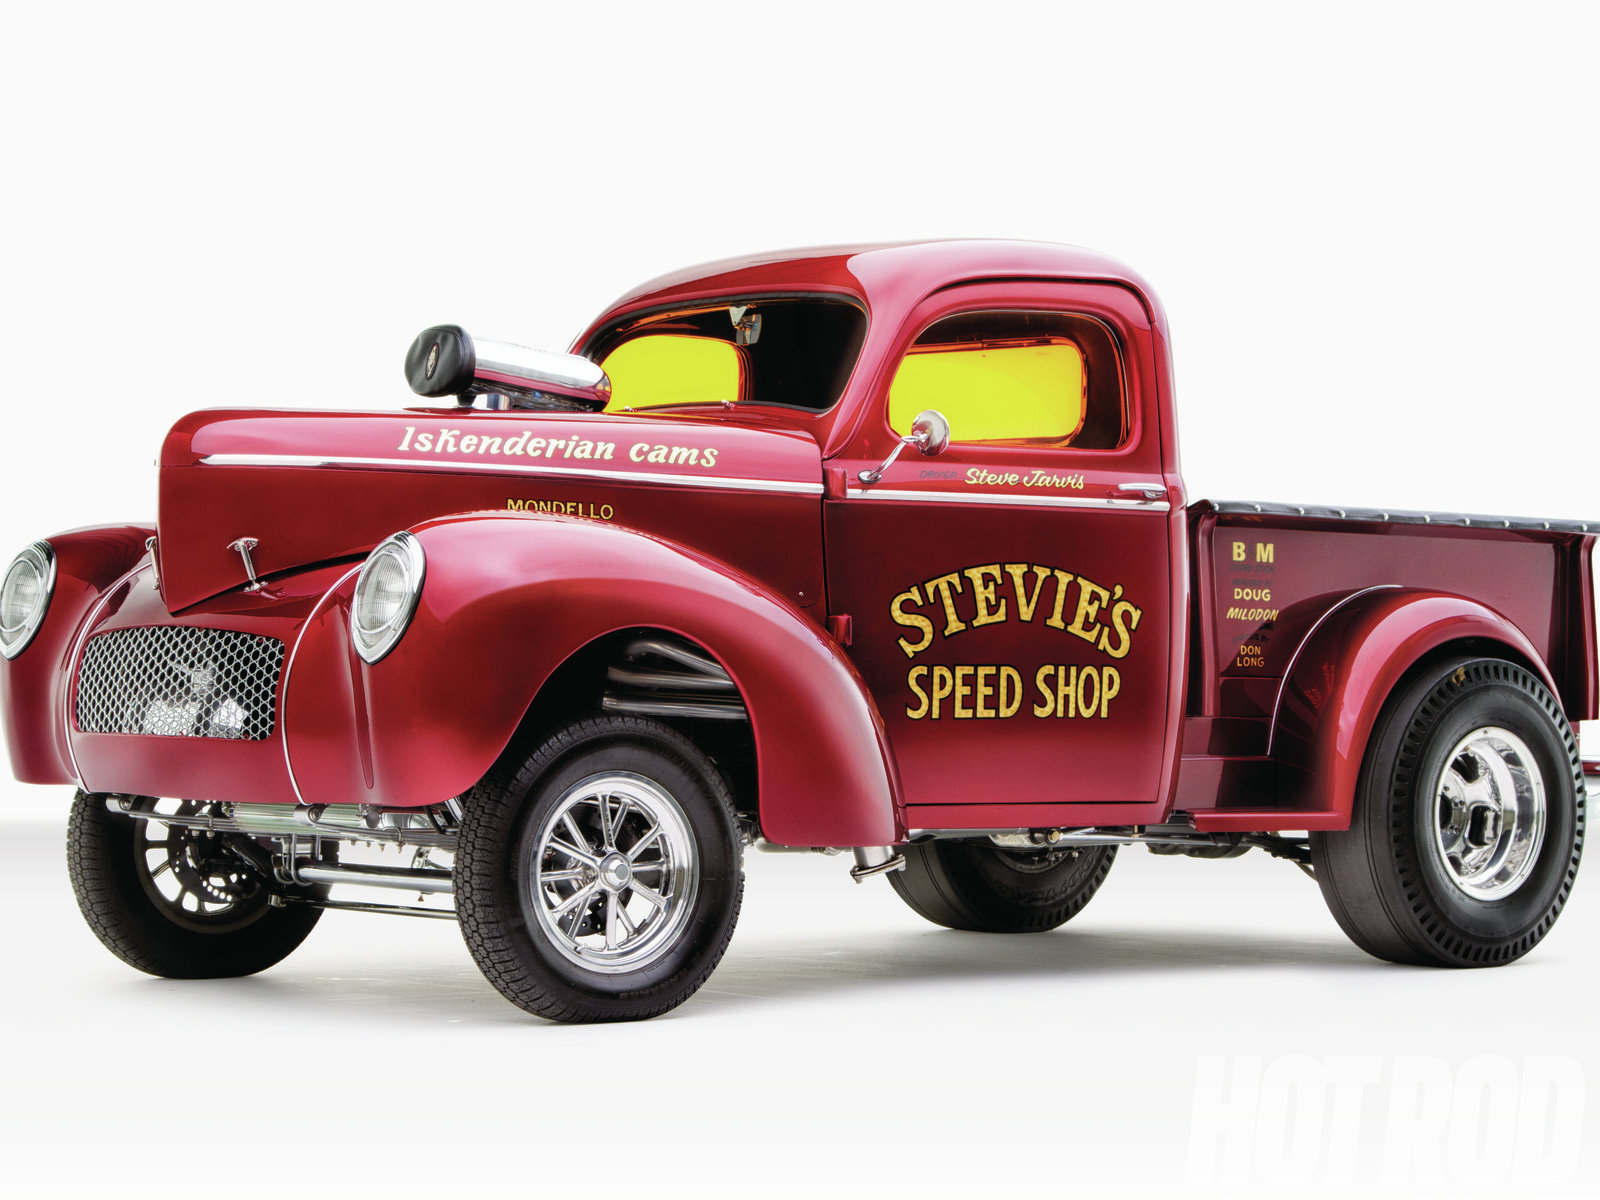 Steve purchased this 1941 Willys truck in 1986 for $1,800 but didn't start on the restoration until almost 20 years later. The basecoat is Inferno Red, a factory Plymouth PT Cruiser color, covered in candy red. We'd venture to say this is the best-looking vehicle to ever wear this color.